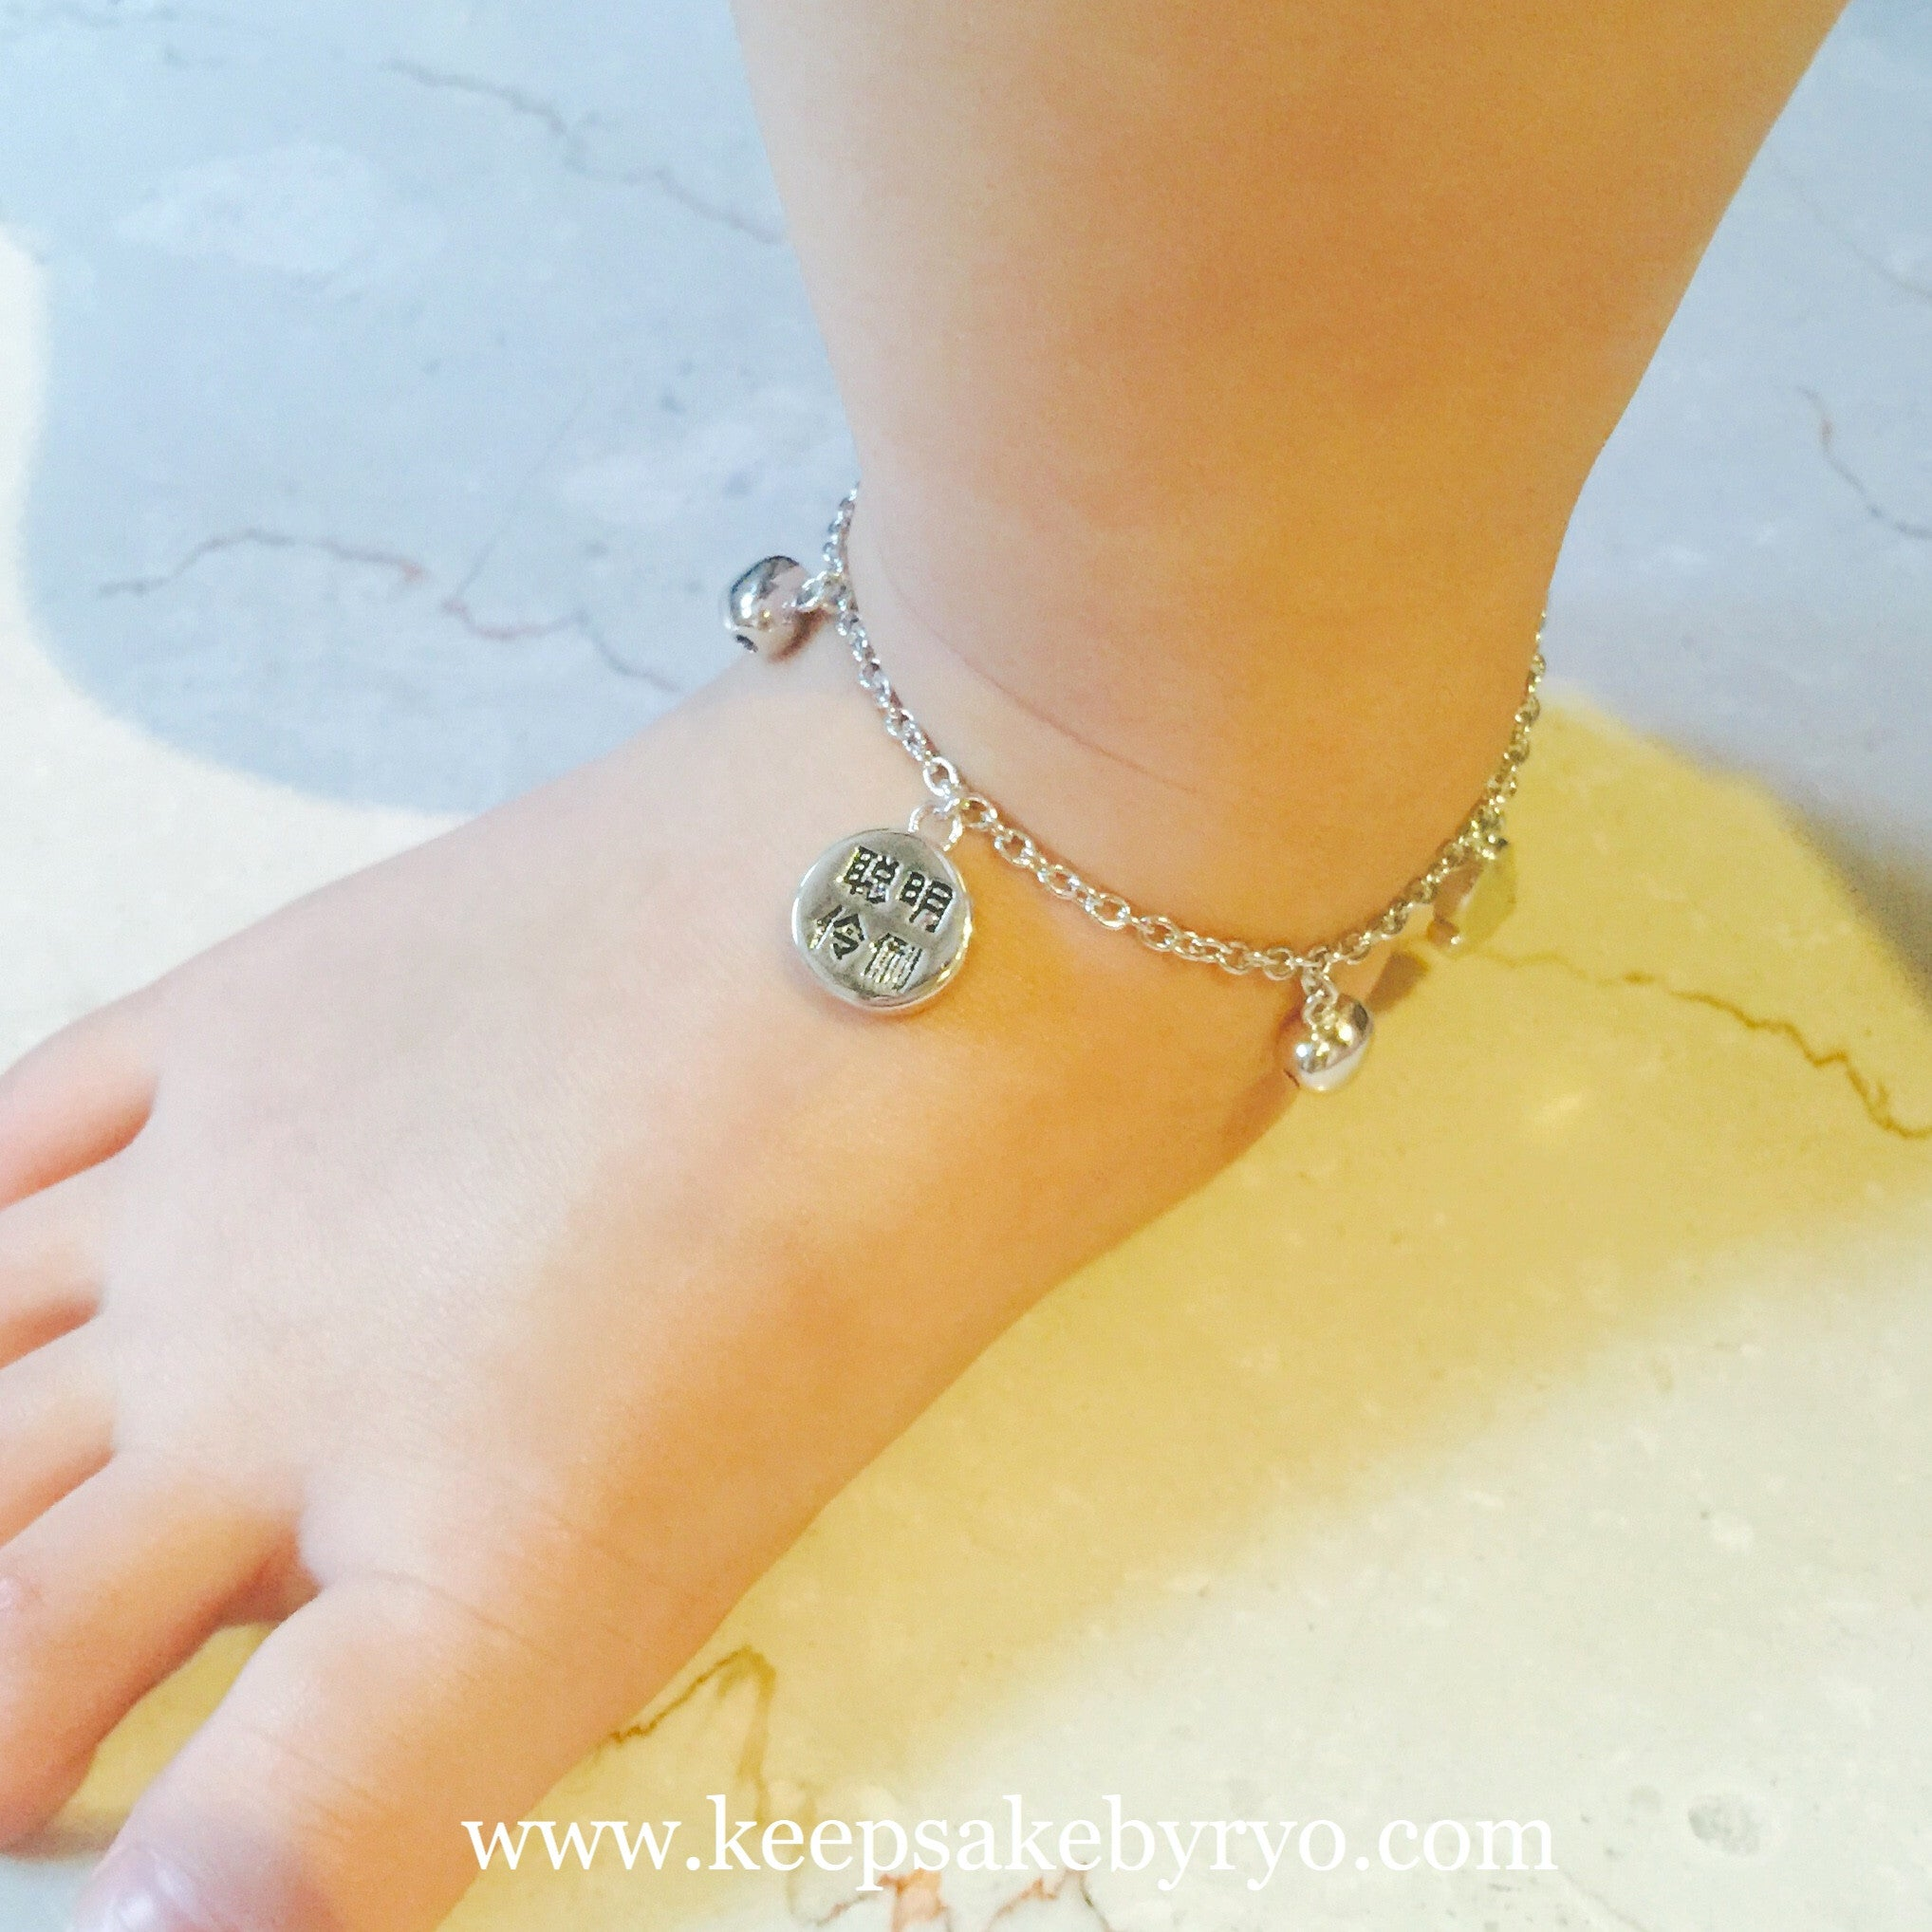 jewelry heart silver wedding sa anklets simple real fine for gifts pin women anklet silverage sterling